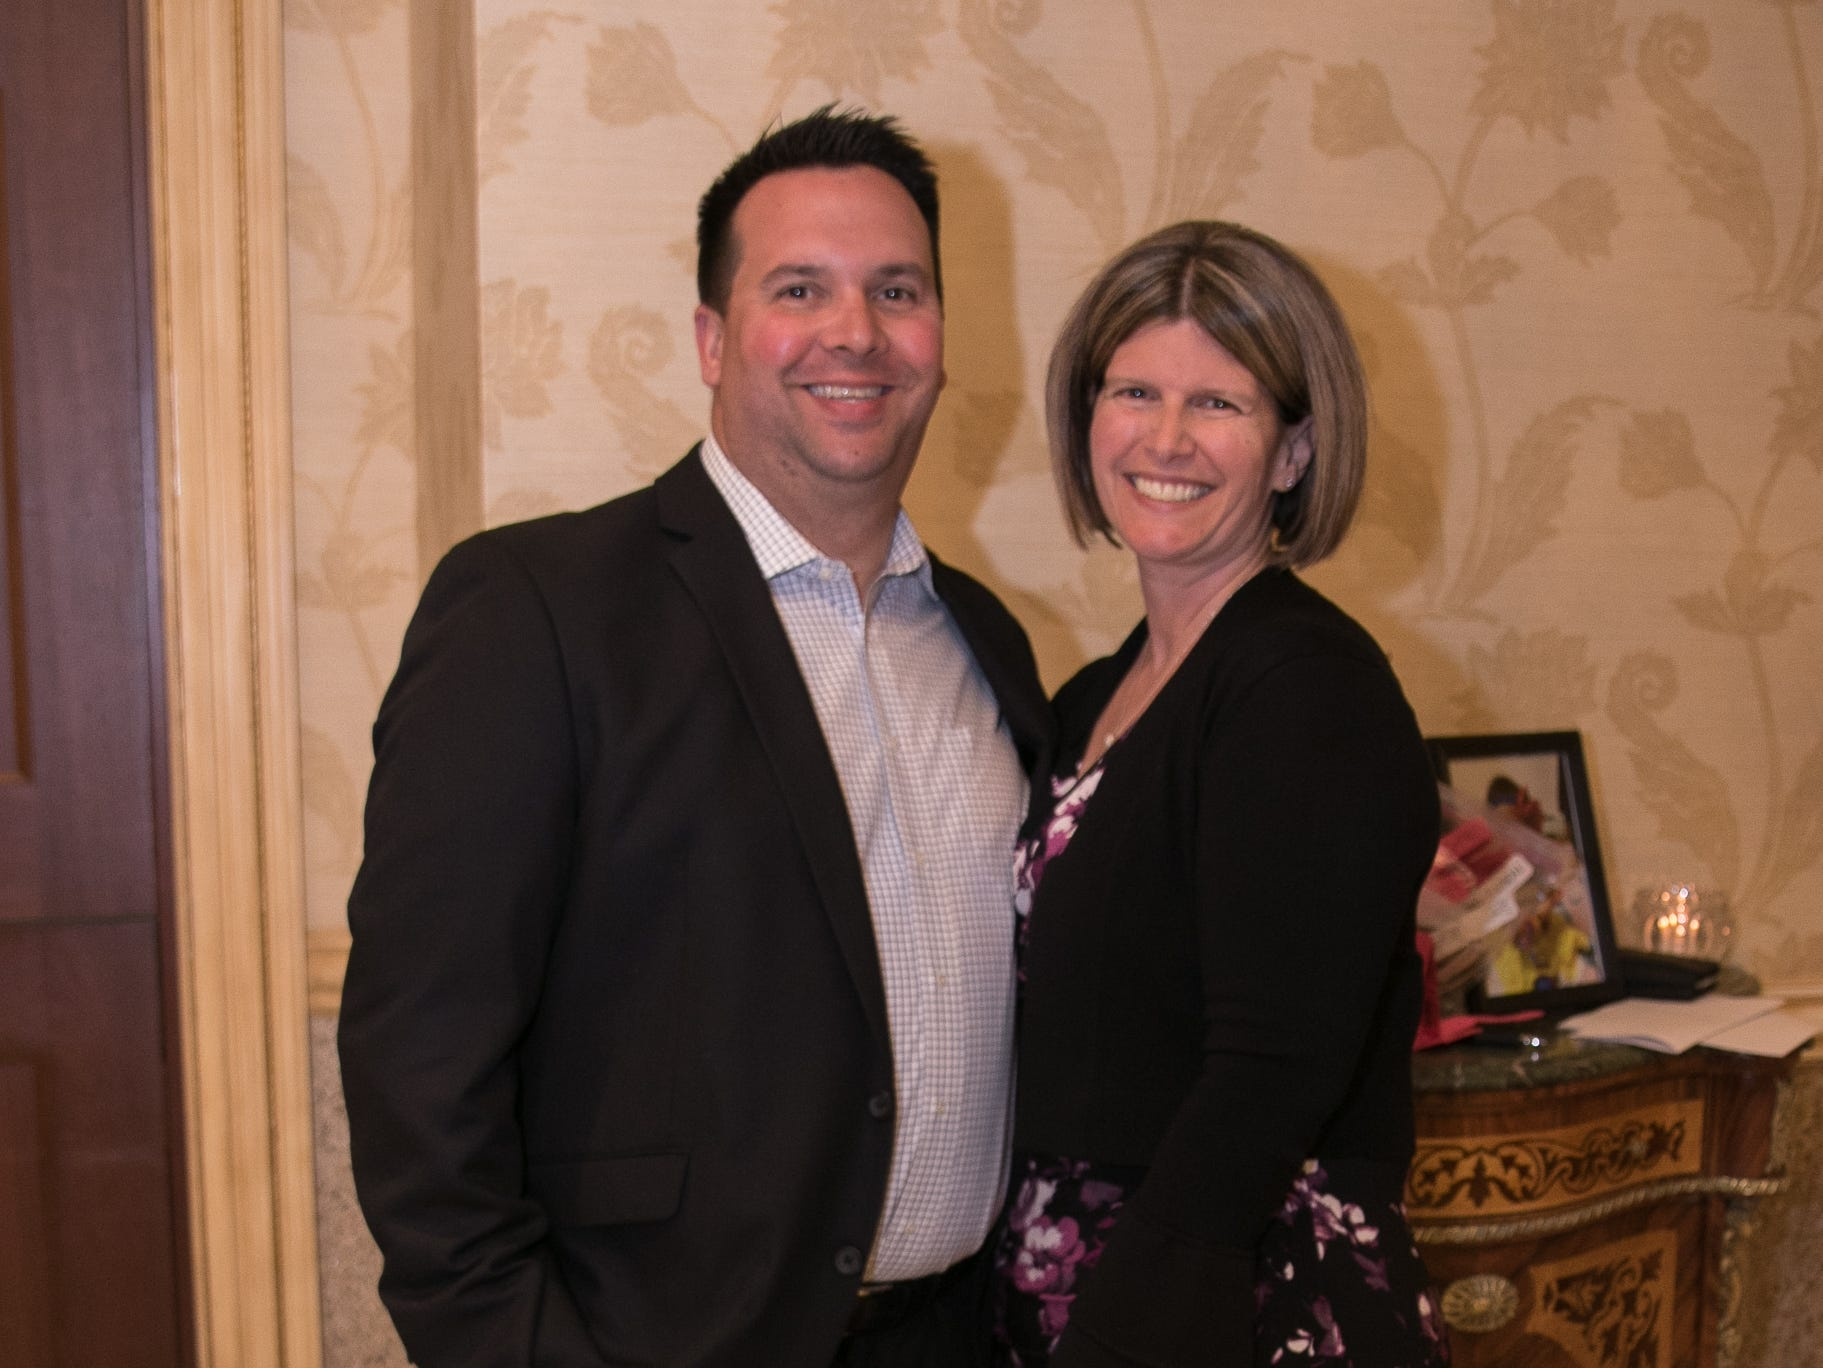 Michael and Tracy Zearfaus. New Hope, a Pregnancy Resource Center, held their annual gala at Seasons in Washington Township. 04/05/2019